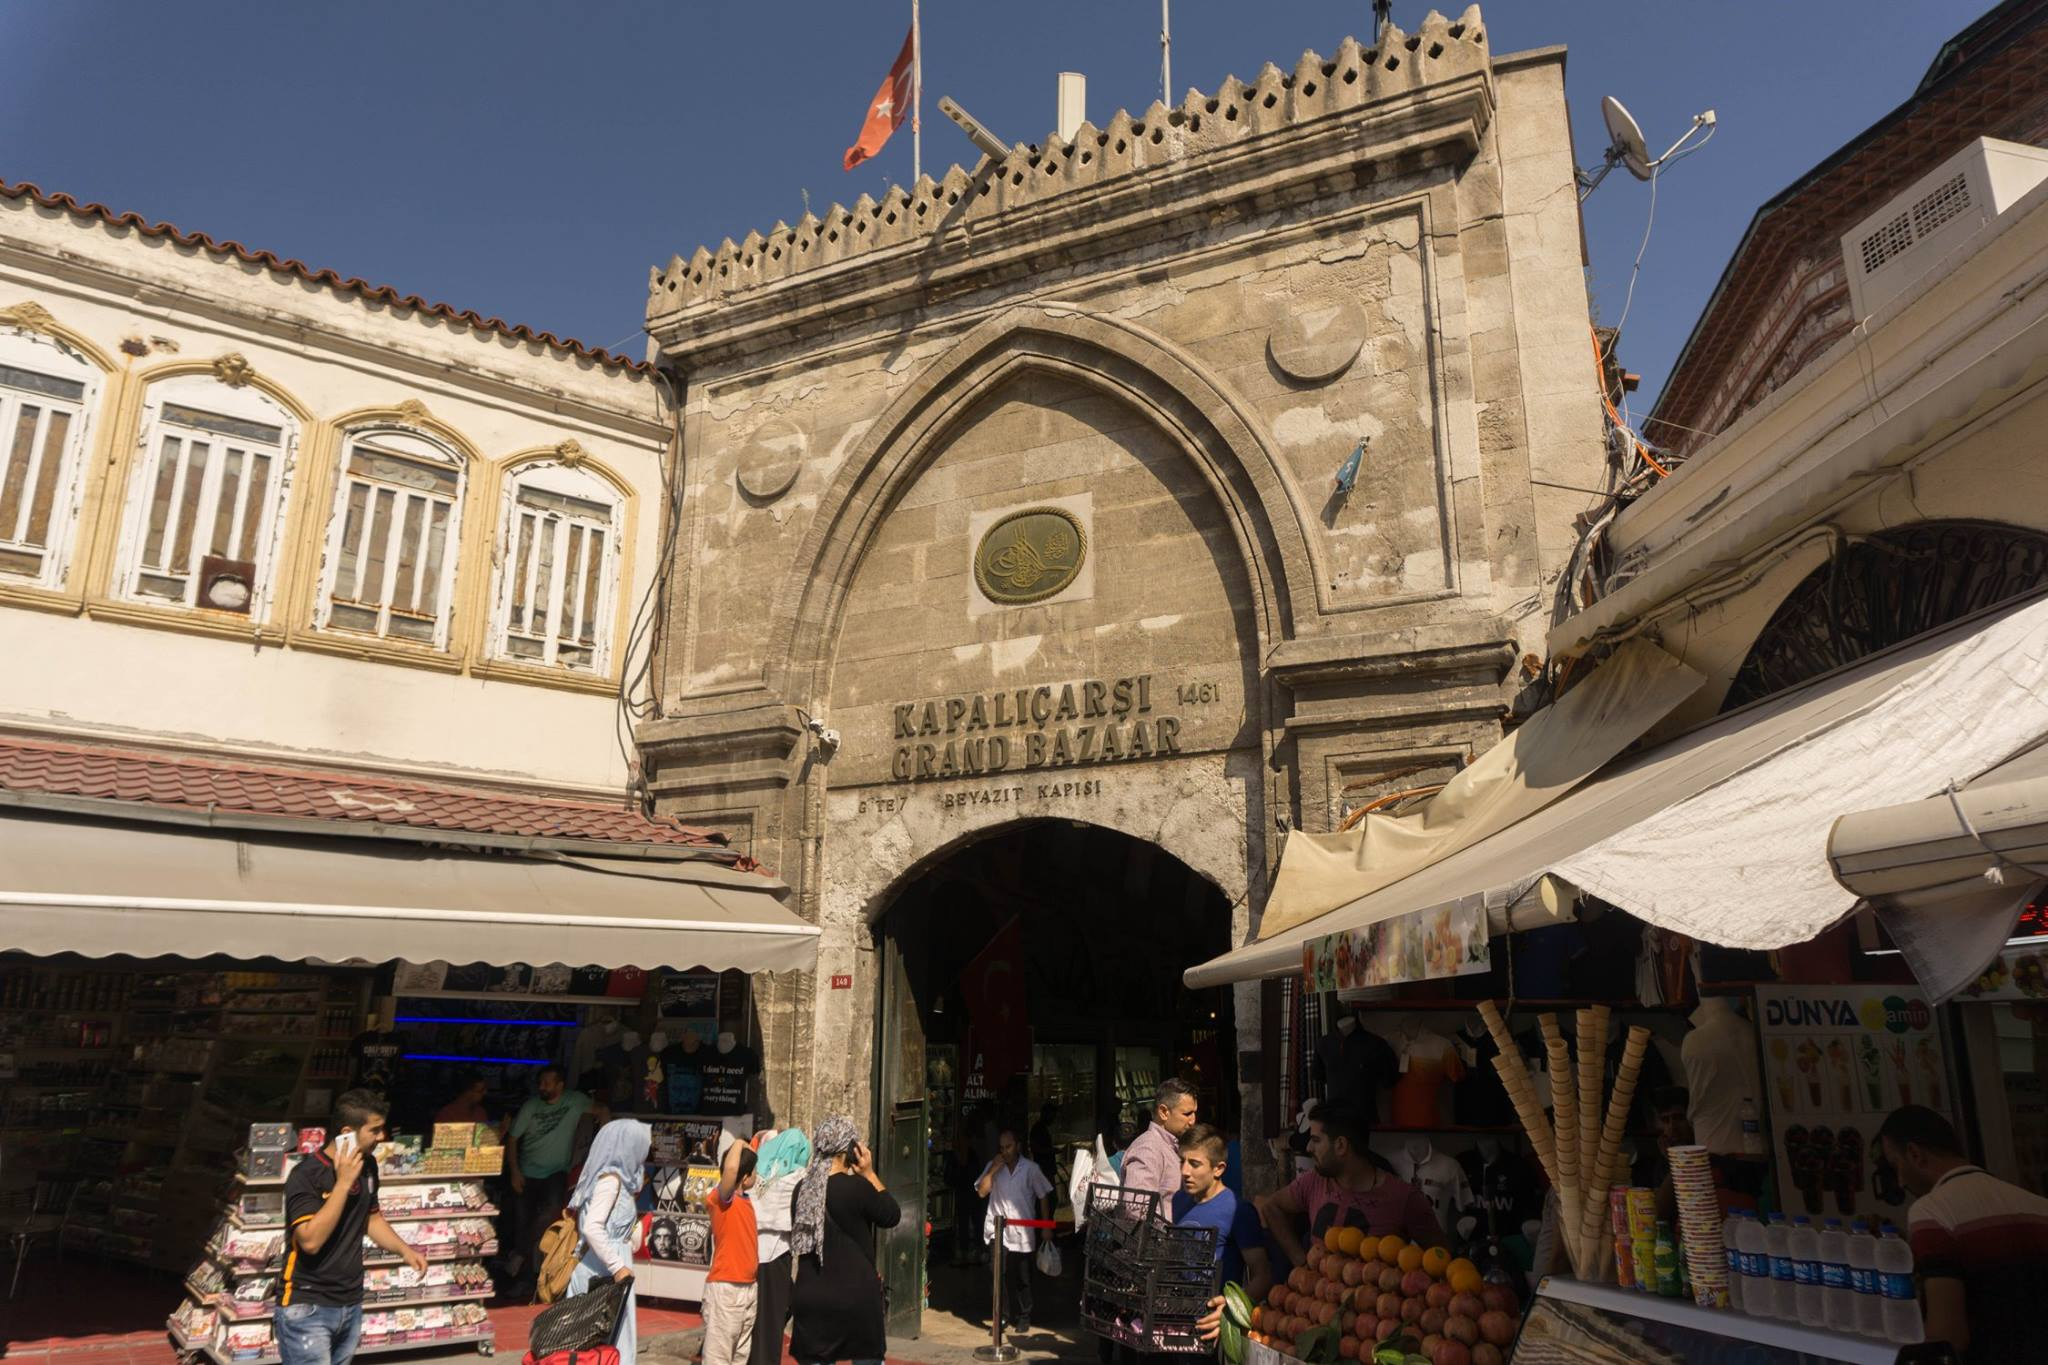 Beyazıt Entry of Grand Bazaar